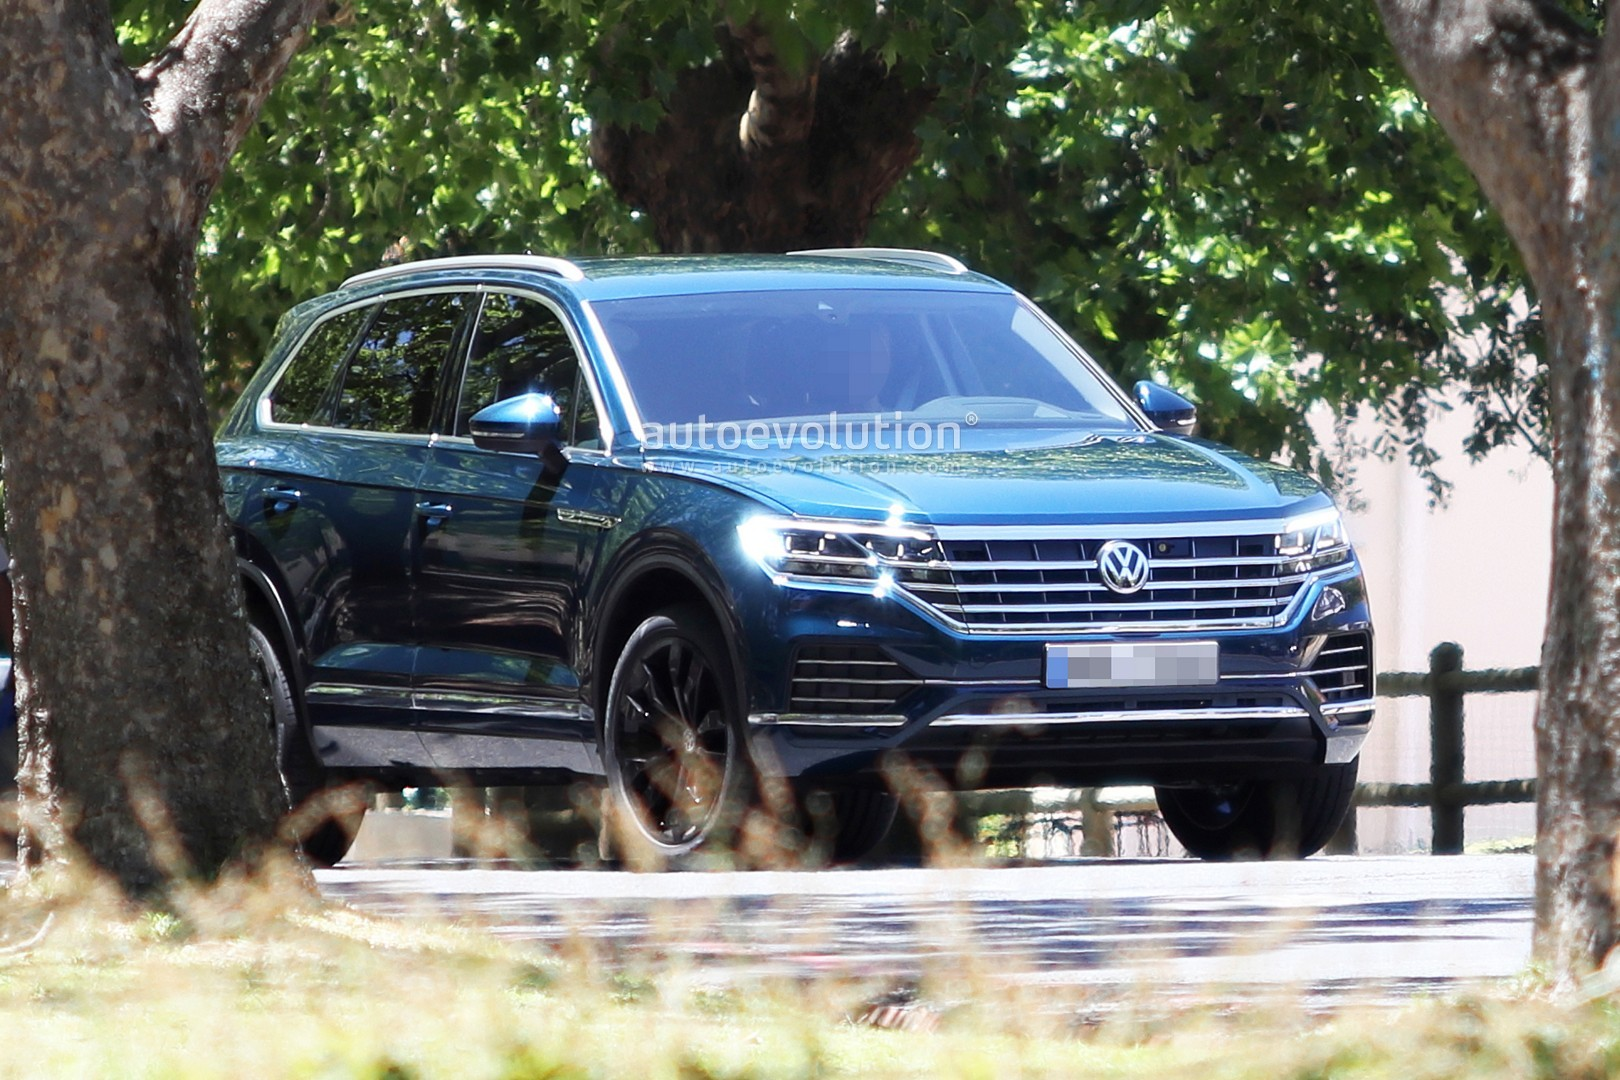 vw tiguan gets new 2 0 tdi diesels with 150 and 184 hp still no brand new model autoevolution. Black Bedroom Furniture Sets. Home Design Ideas